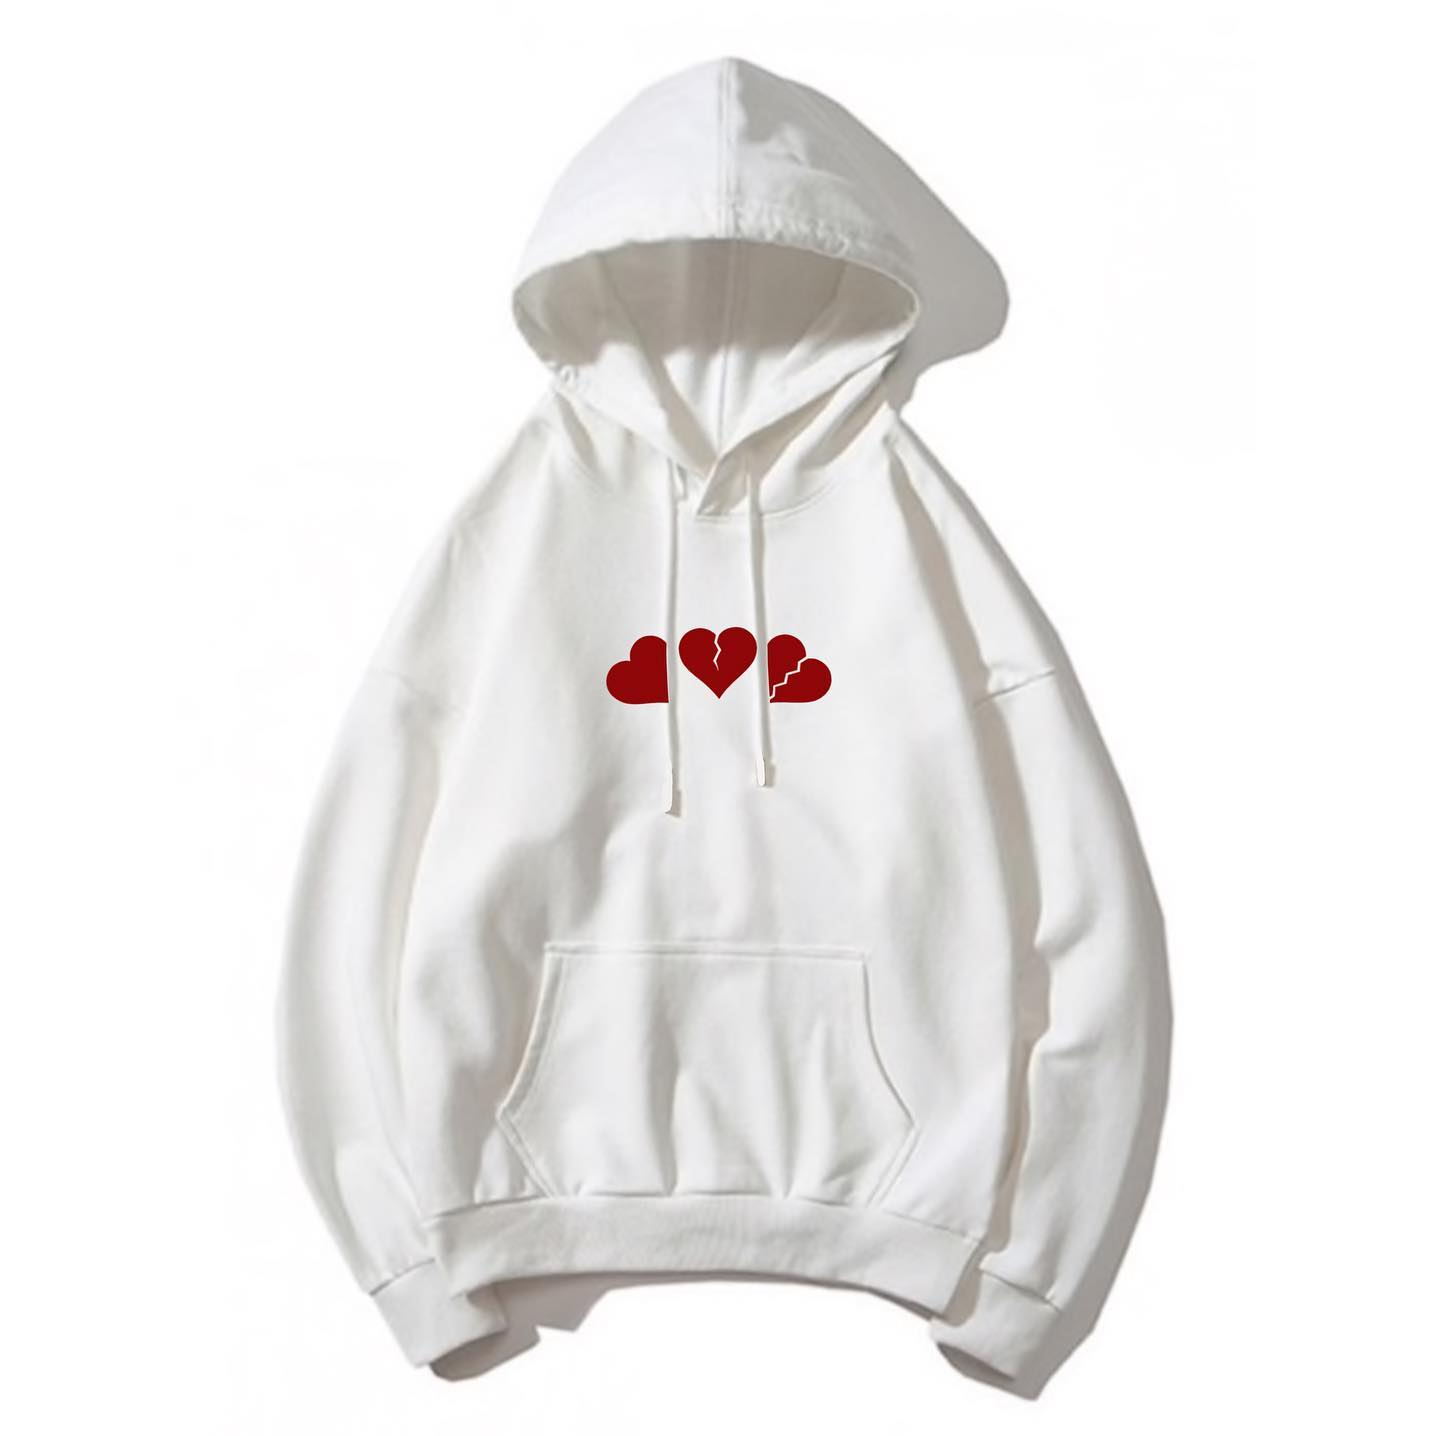 "<p>Check out this comfy hoodie from HOMS Seattle (Heart On My Sleeve Seattle), a clothing line aimed to give people an outlet to deal with mental illness through clothes.{&nbsp;}{&nbsp;}<a  href=""https://homsseattle.com/collections/frontpage/products/phases-hoodie-1"" target=""_blank"" title=""https://homsseattle.com/collections/frontpage/products/phases-hoodie-1"">Shop it</a>. (Image: HOMS Seattle){&nbsp;}</p>"